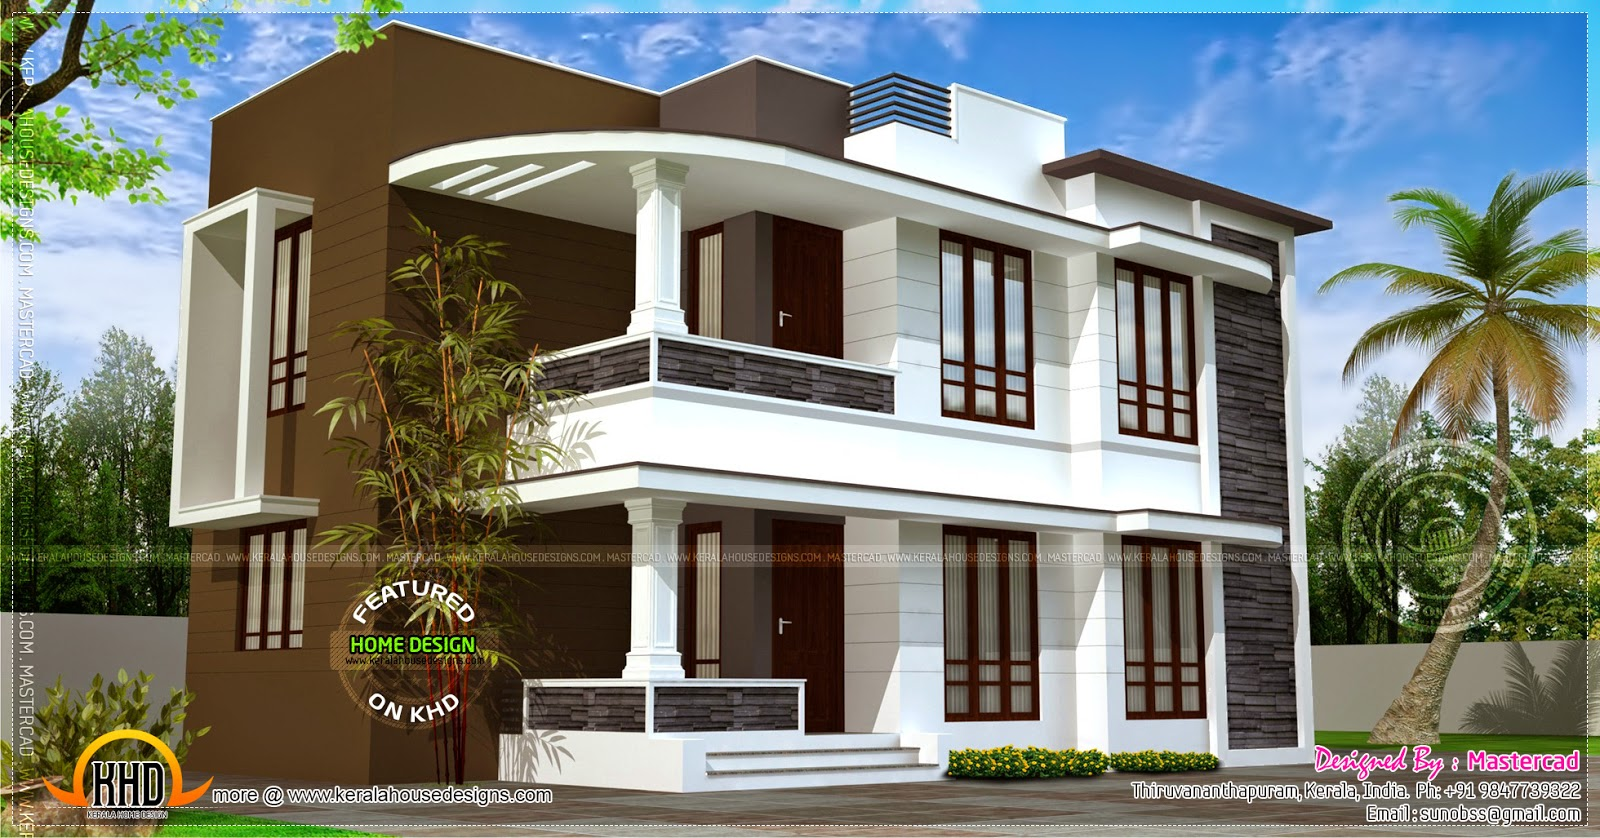 Modern 1500 house exterior kerala home design and 1500 sq ft house plans 2 story indian style